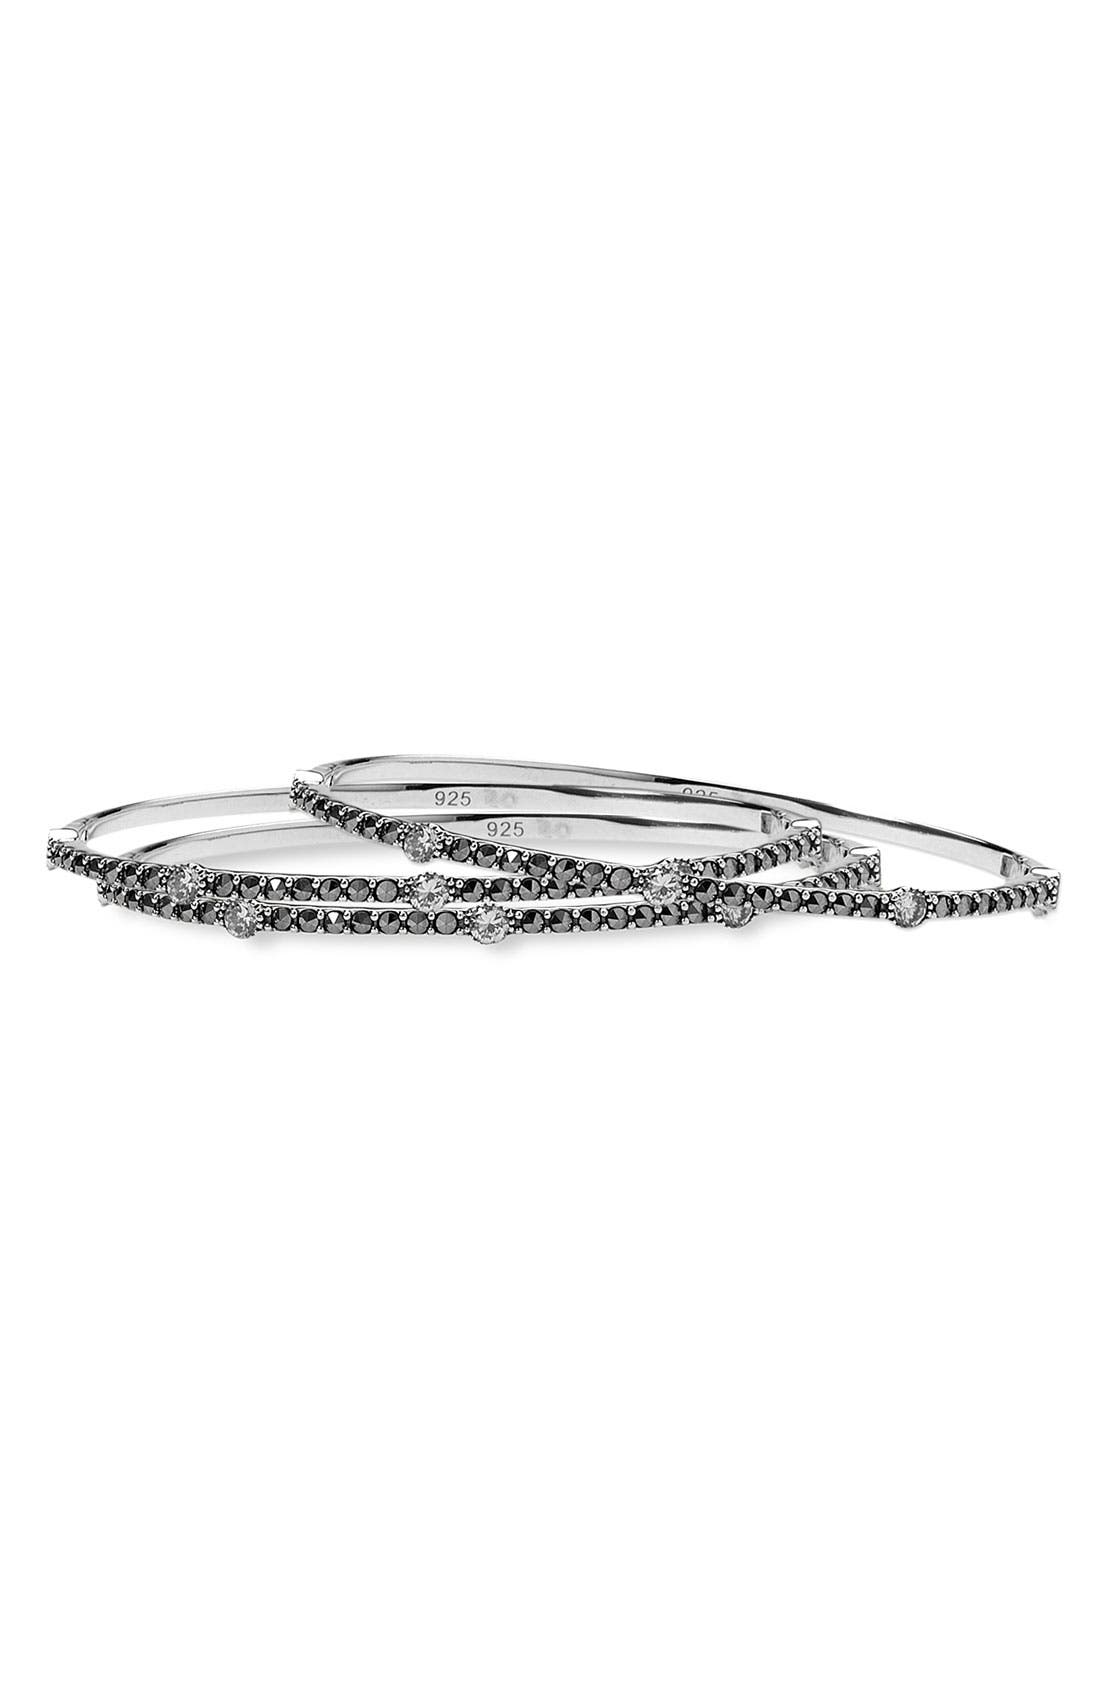 Main Image - Judith Jack Crystal & Marcasite Bangle